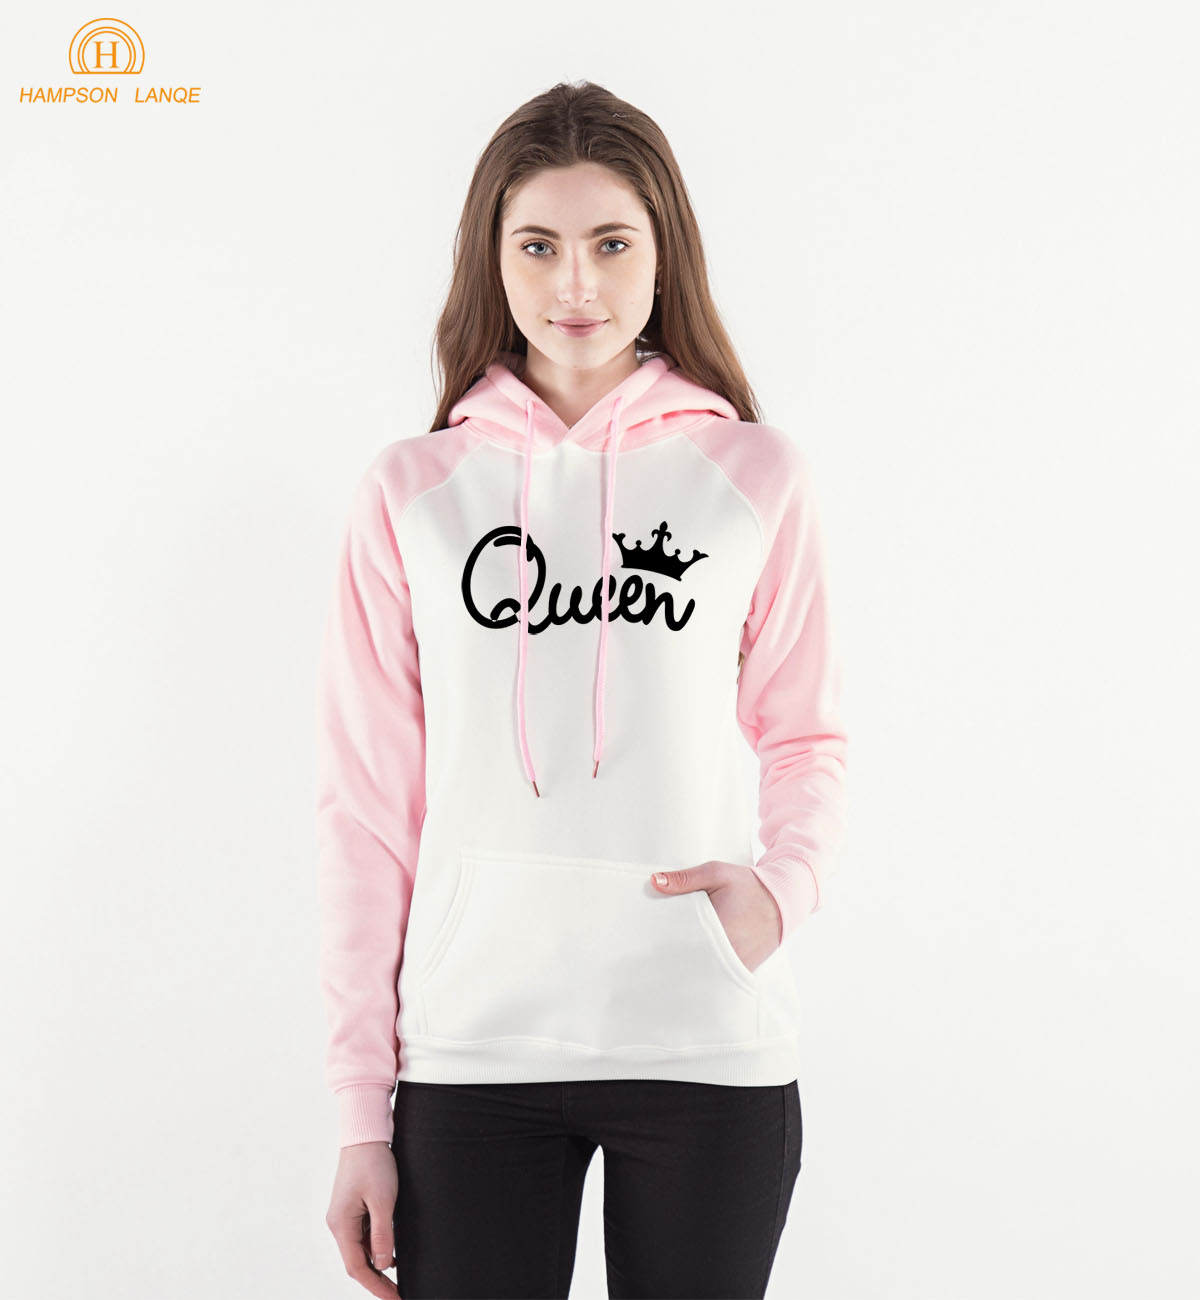 Imperial Crown Queen Print Kawaii Raglan Hoodies 2019 Hot Sale Spring Autumn Women Sweatshirts Warm Fleece Long Sleeve Hooded